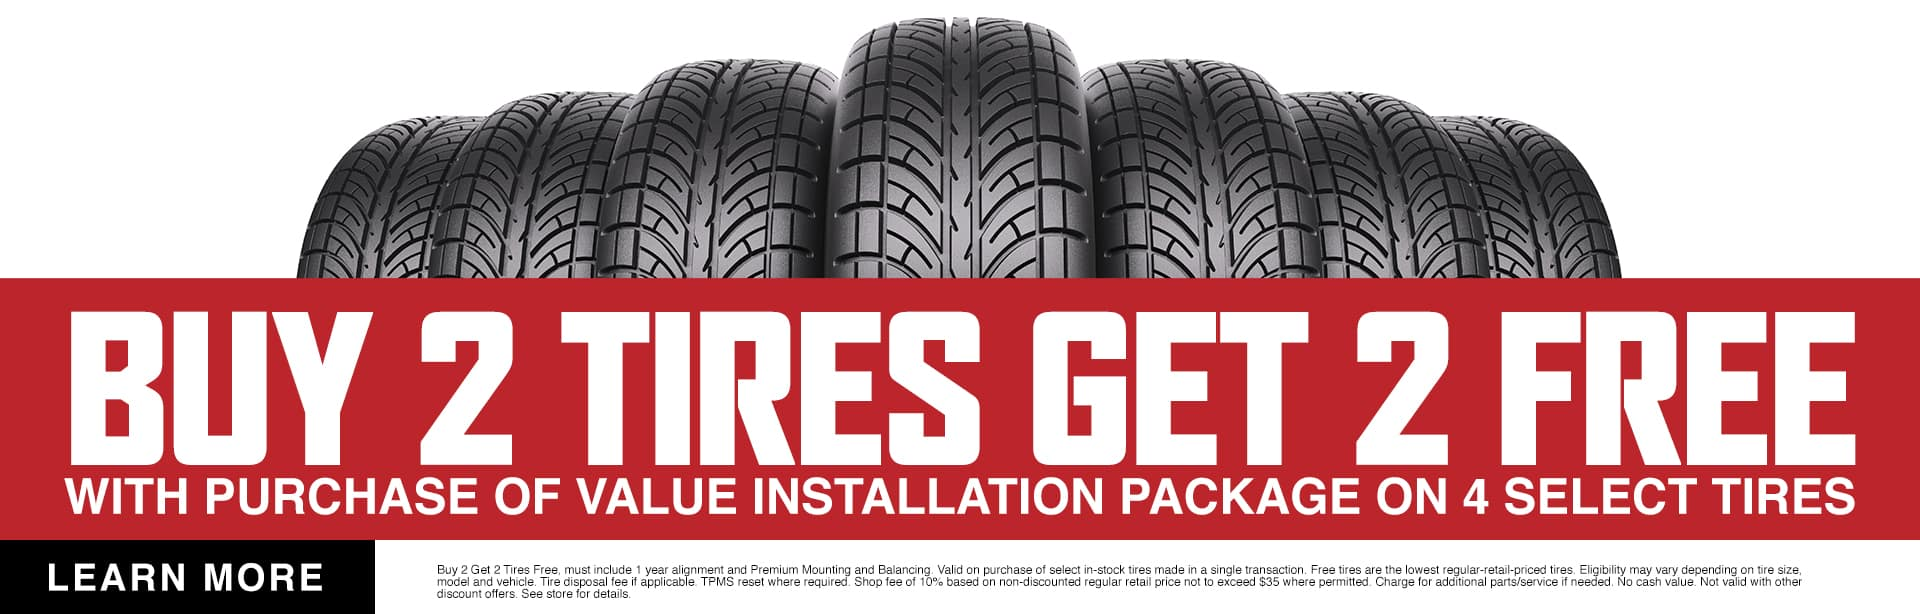 Buy 2 Tires Get 2 Free With Purchase Of Value Installation Package On 4 Select Tires